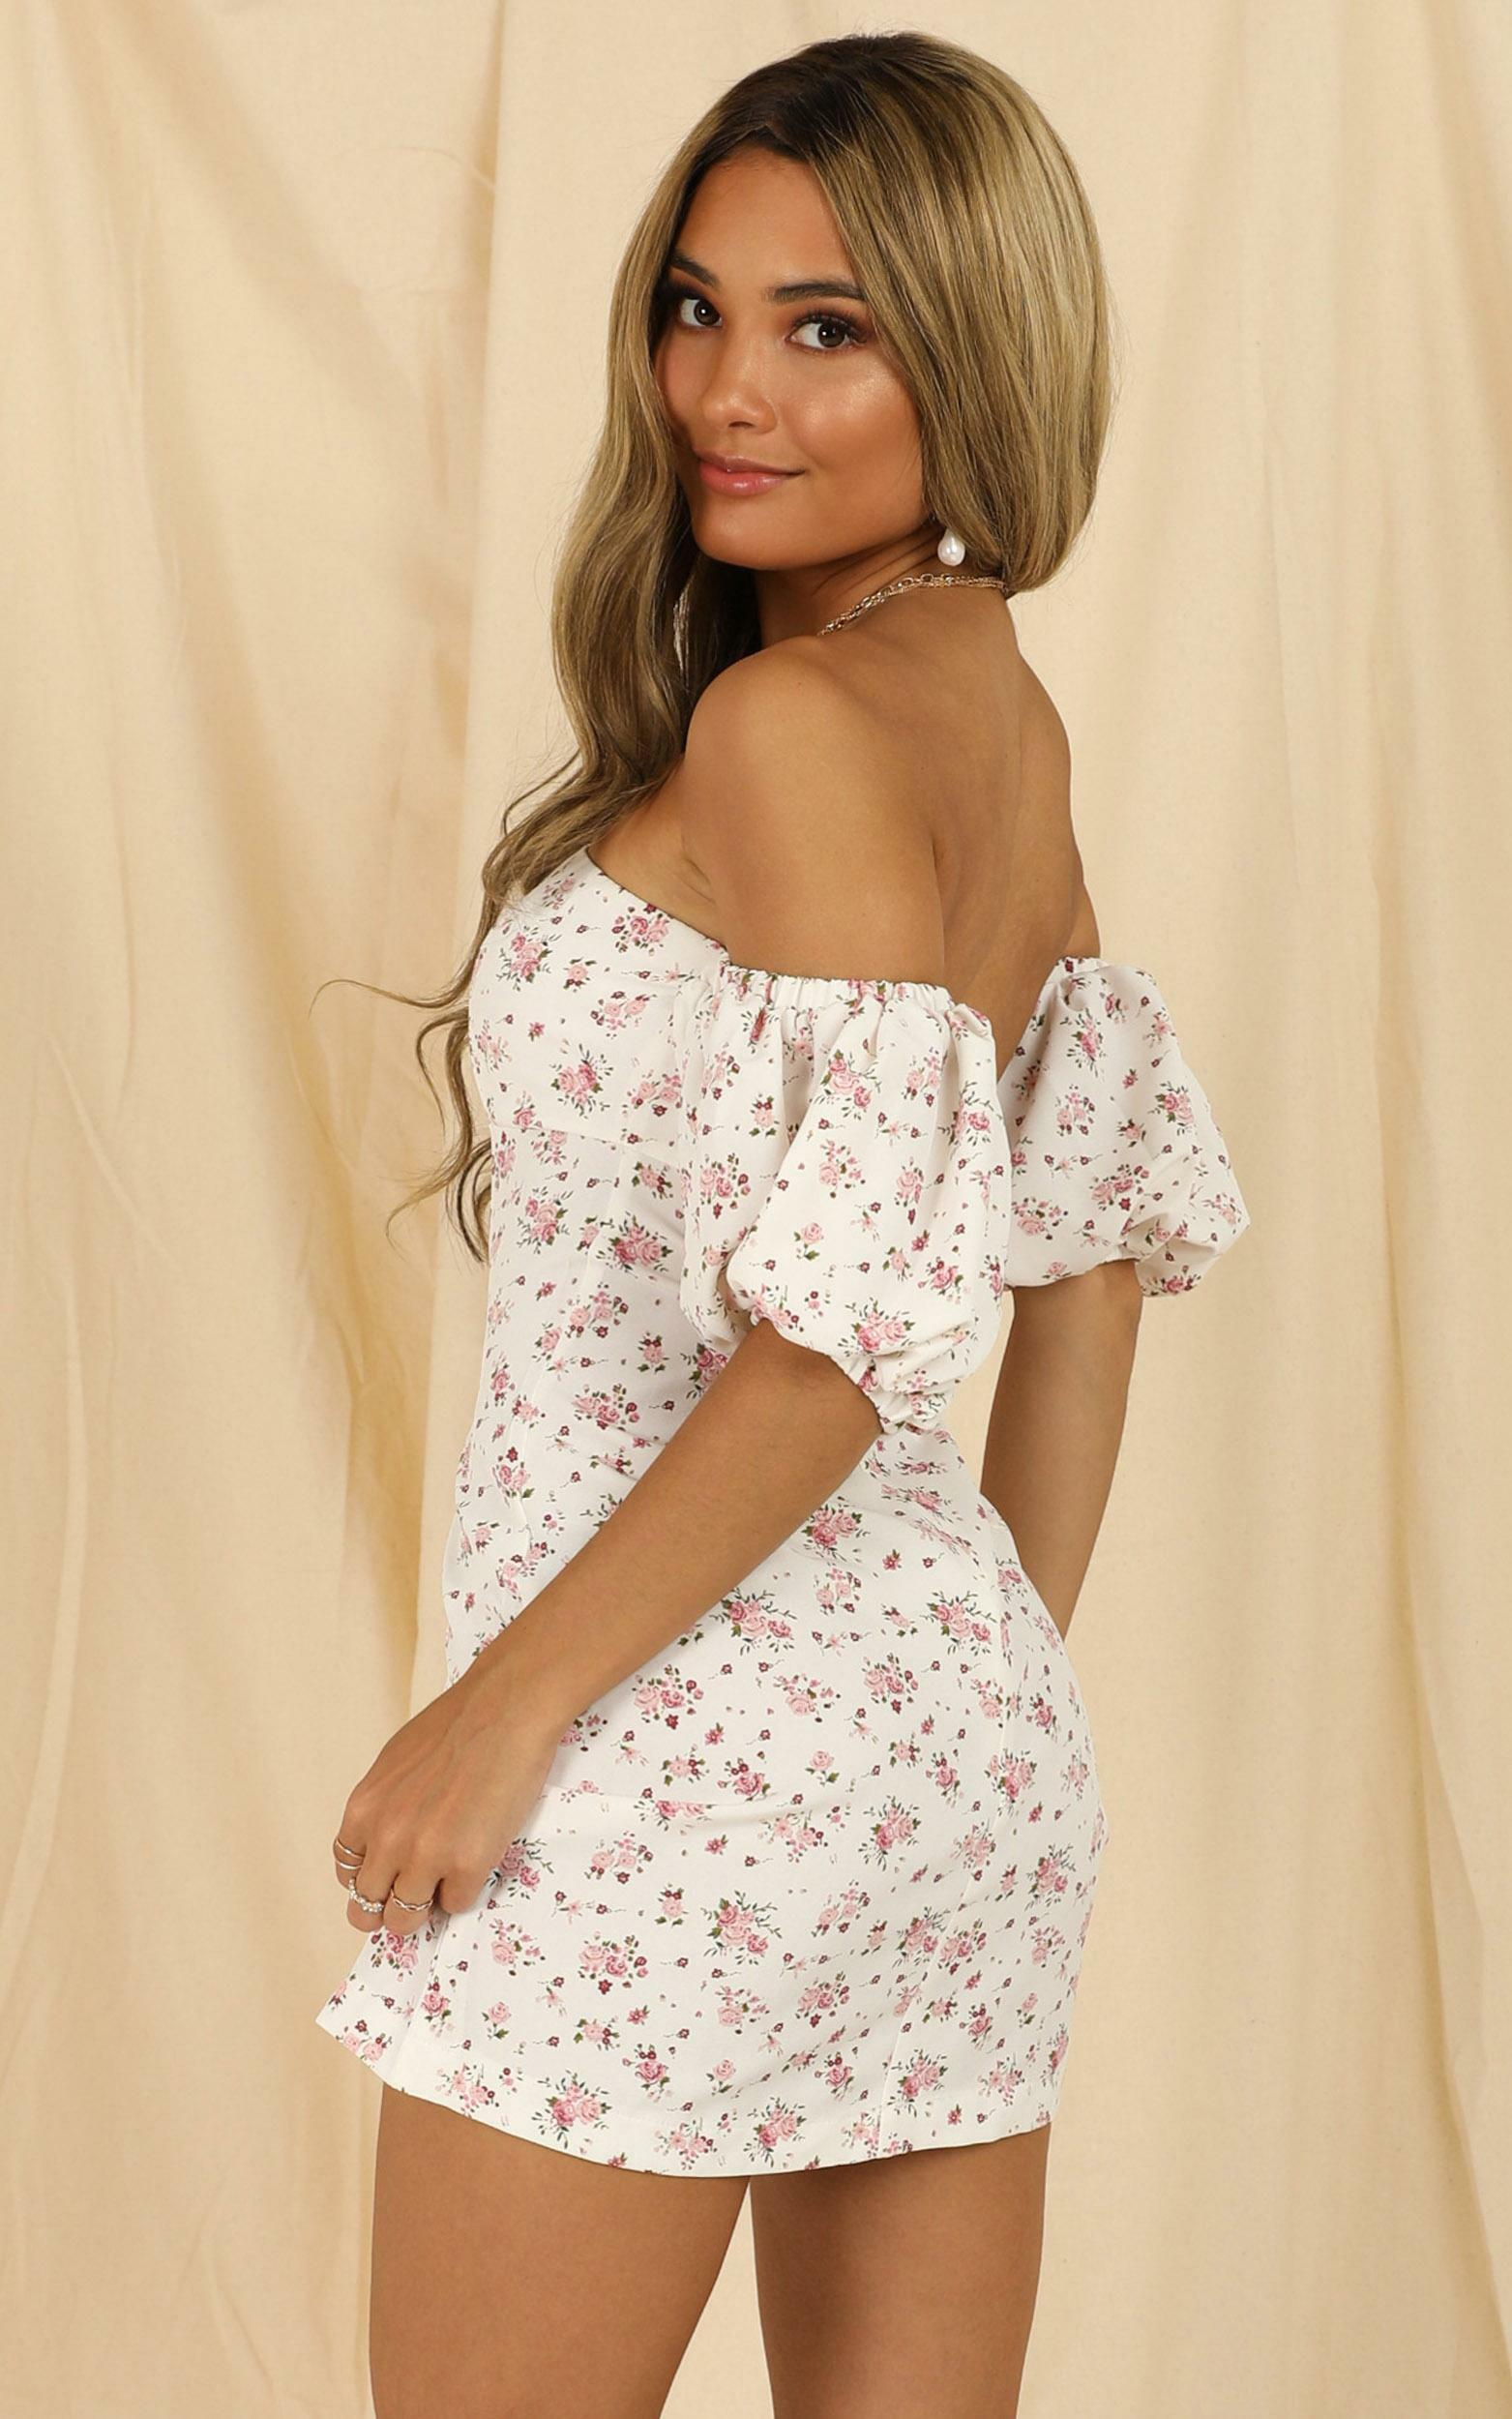 Purity Spiral Dress In White Floral - 16 (XXL), White, hi-res image number null